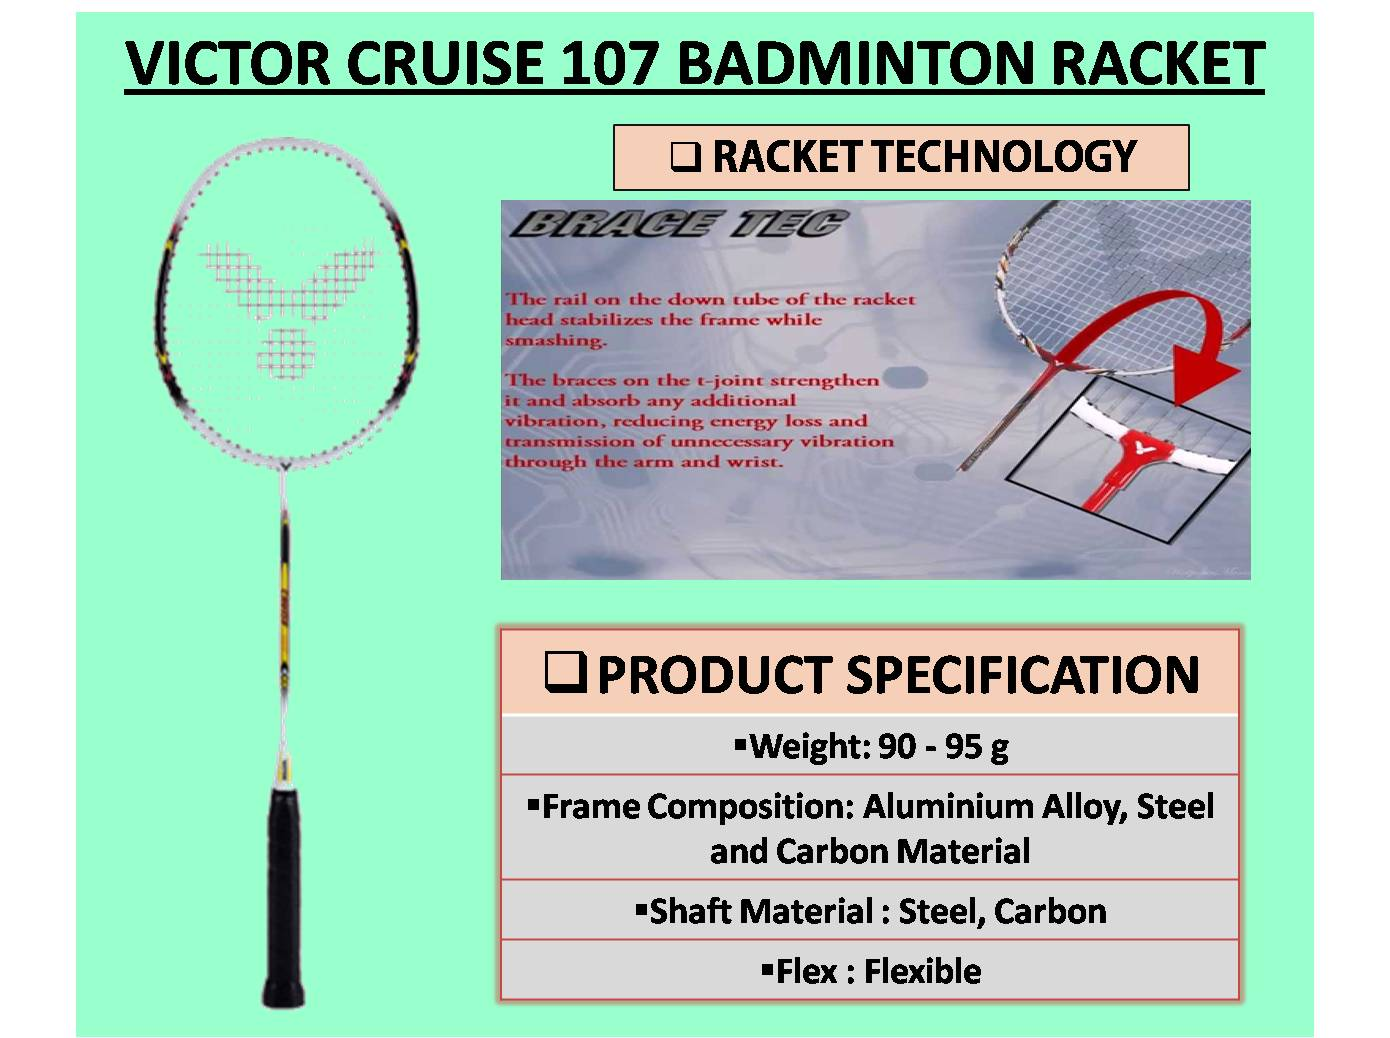 VICTOR CRUISE 107 BADMINTON RACKET